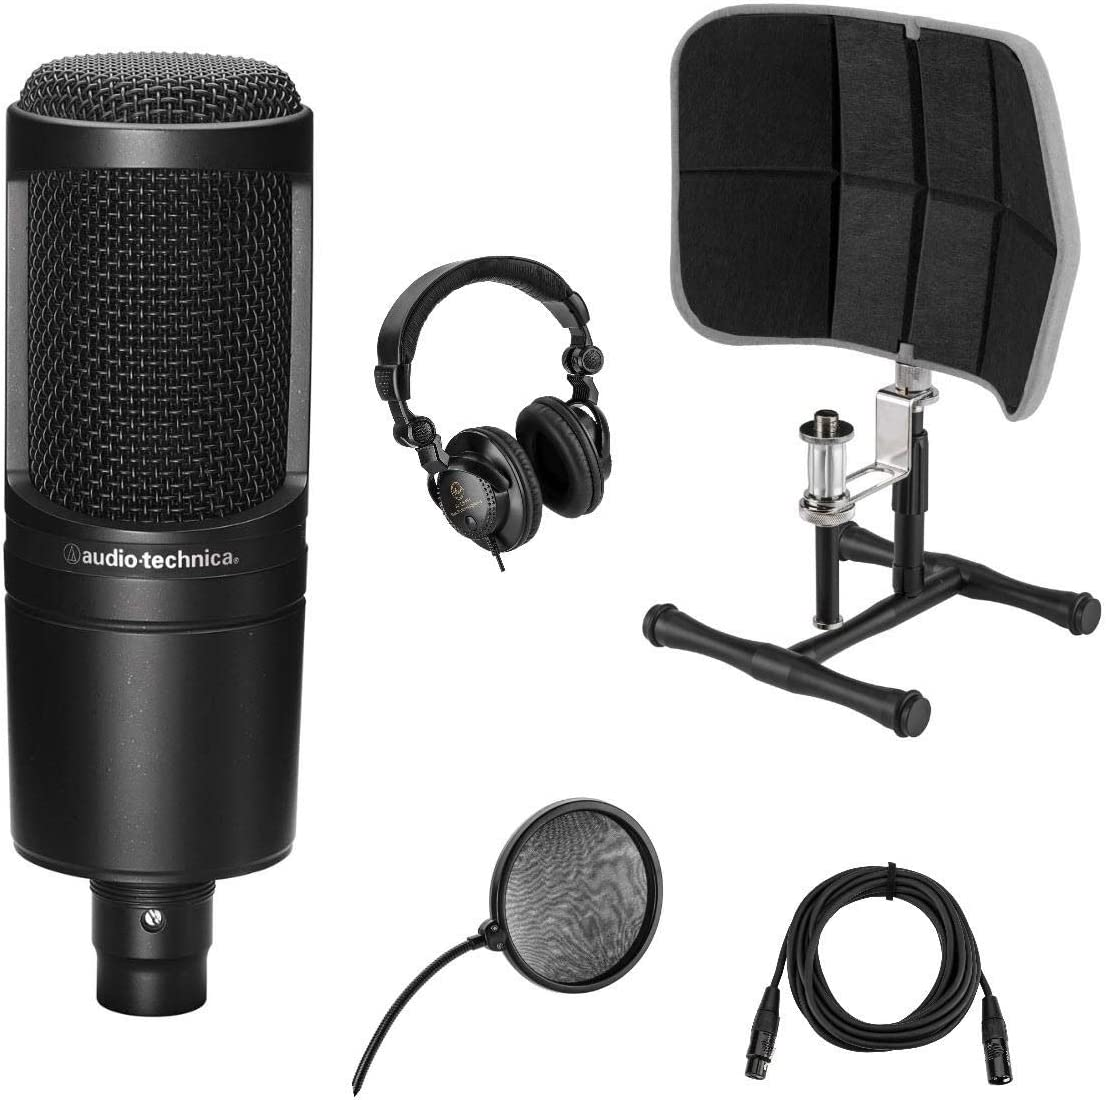 Audio-Technica AT2020 Cardioid Condenser Microphone - Bundle With Professional Desktop Isolation Filter, Studio Monitor Headphones, 15' XLR M to XLR F Mic Cable, Pop Filter